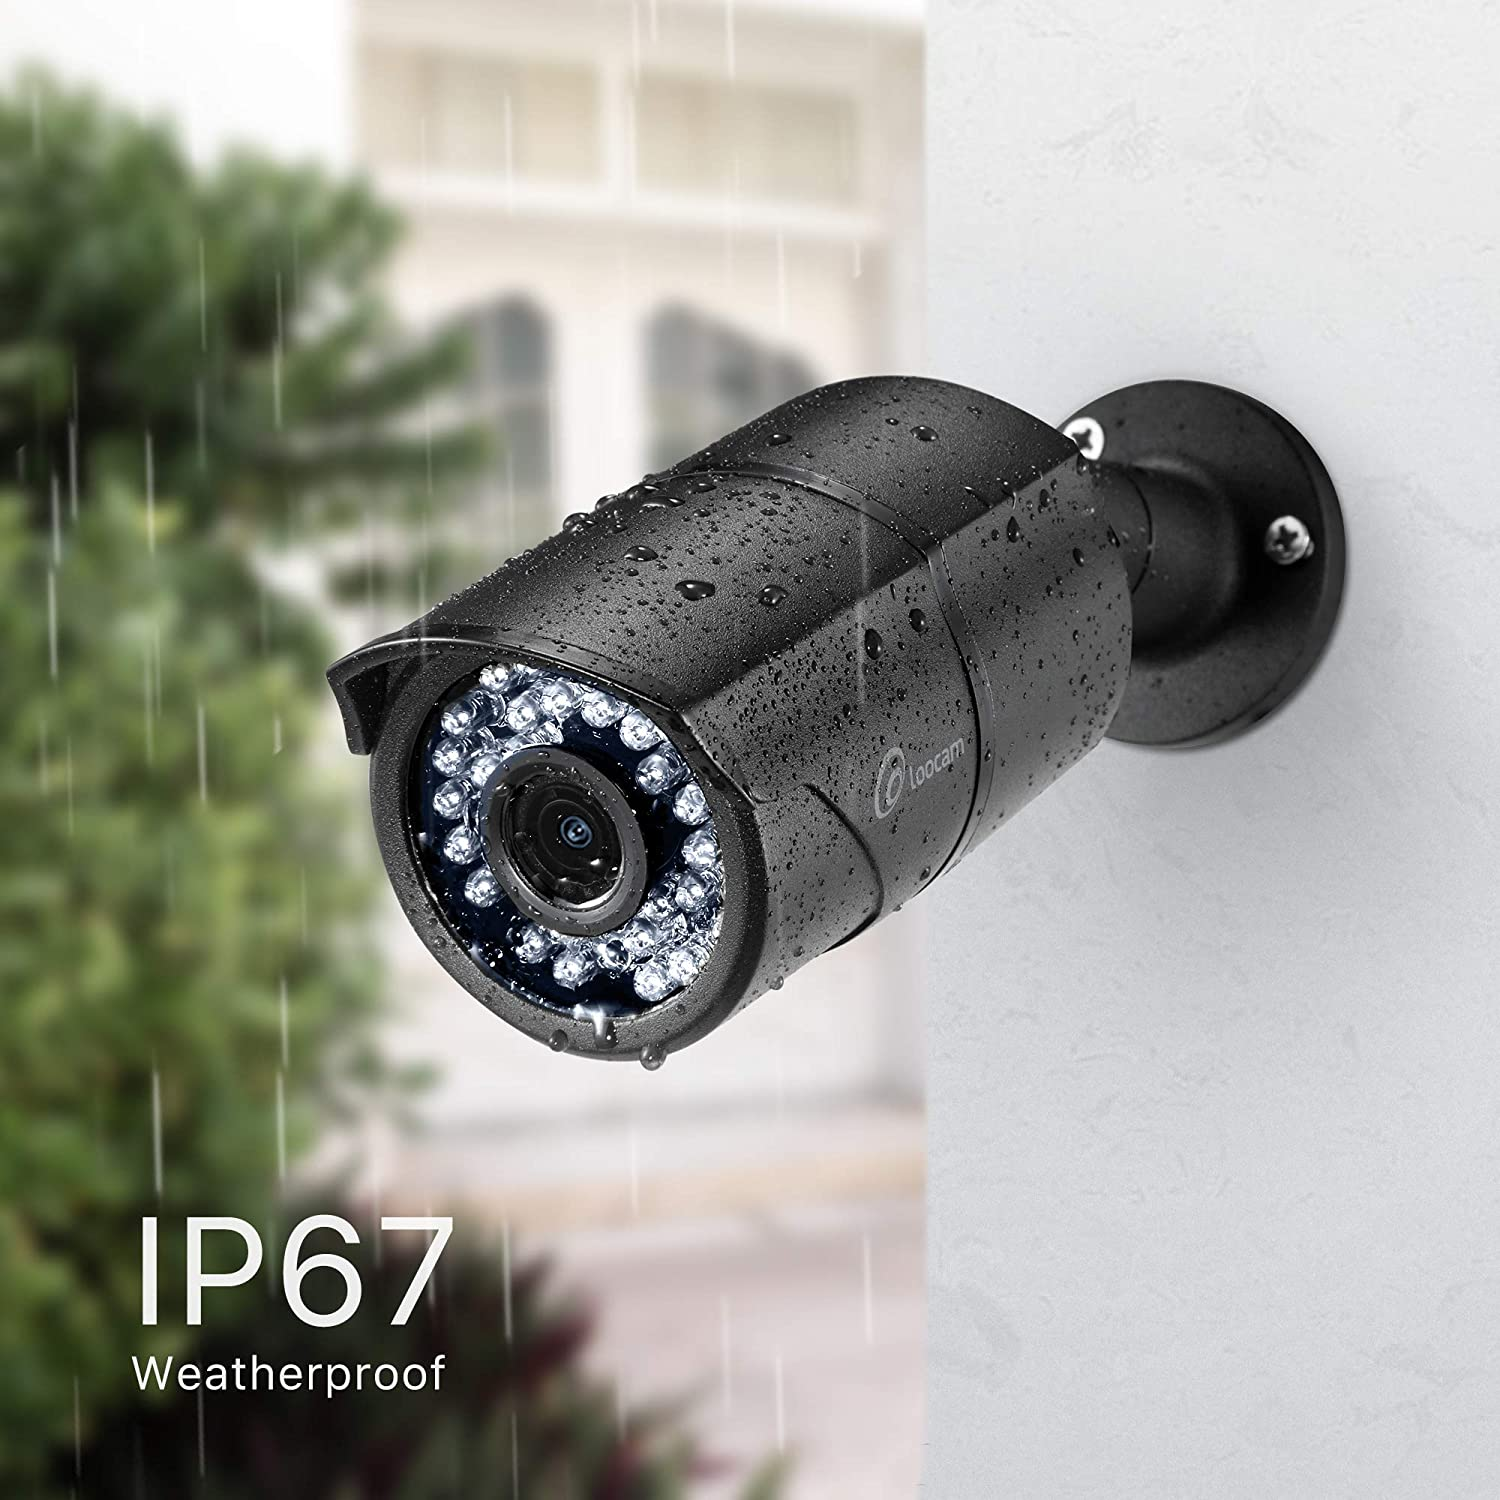 Weatherproof CCTV Camera with 36pcs IR LEDs 8.0 MP Ultra HD 8ch Surveillance H.265+ DVR and 4 x 8MP Bullet Cameras Loocam 8 Channel 4K Home Security Camera System 150ft Night Vision 2TB HDD 3840 x 2160